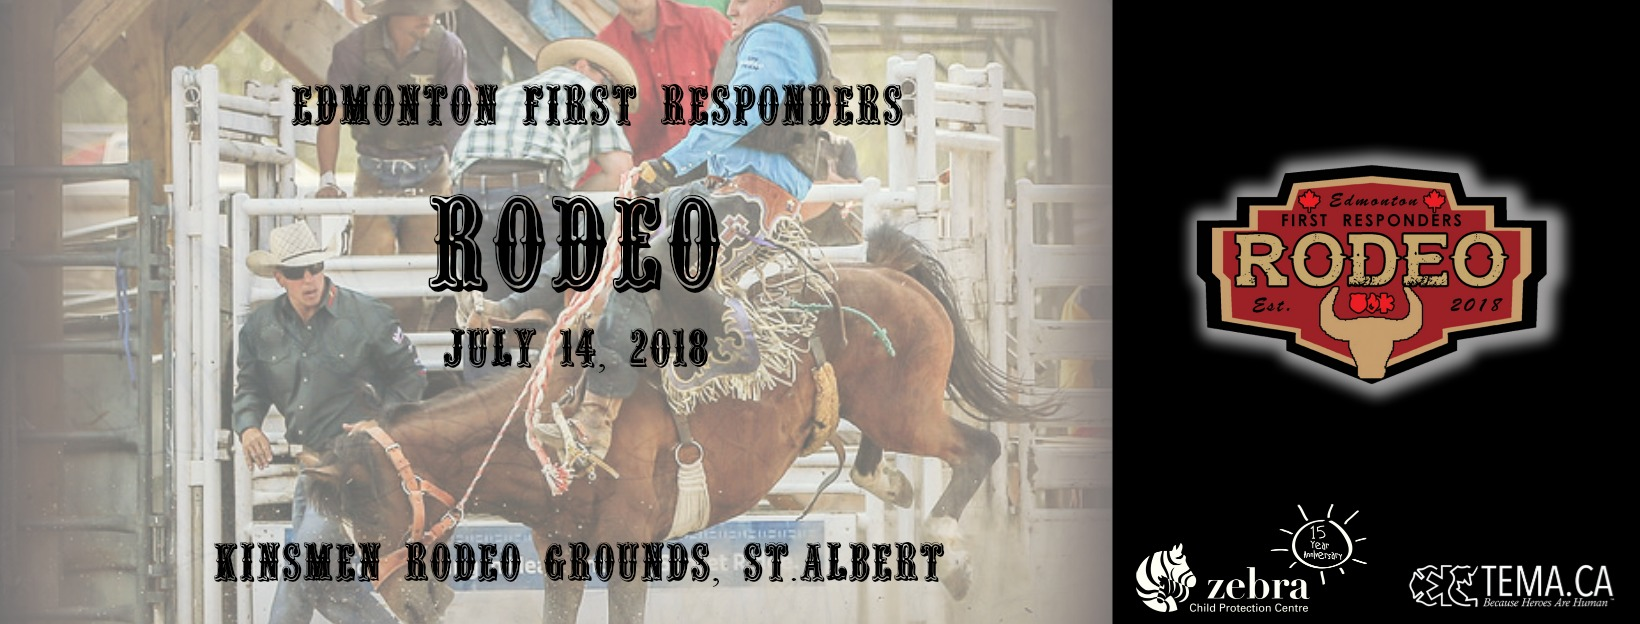 "FIRST ANNUAL ""EDMONTON FIRST RESPONDERS RODEO""  HAPPENING THIS SATURDAY"